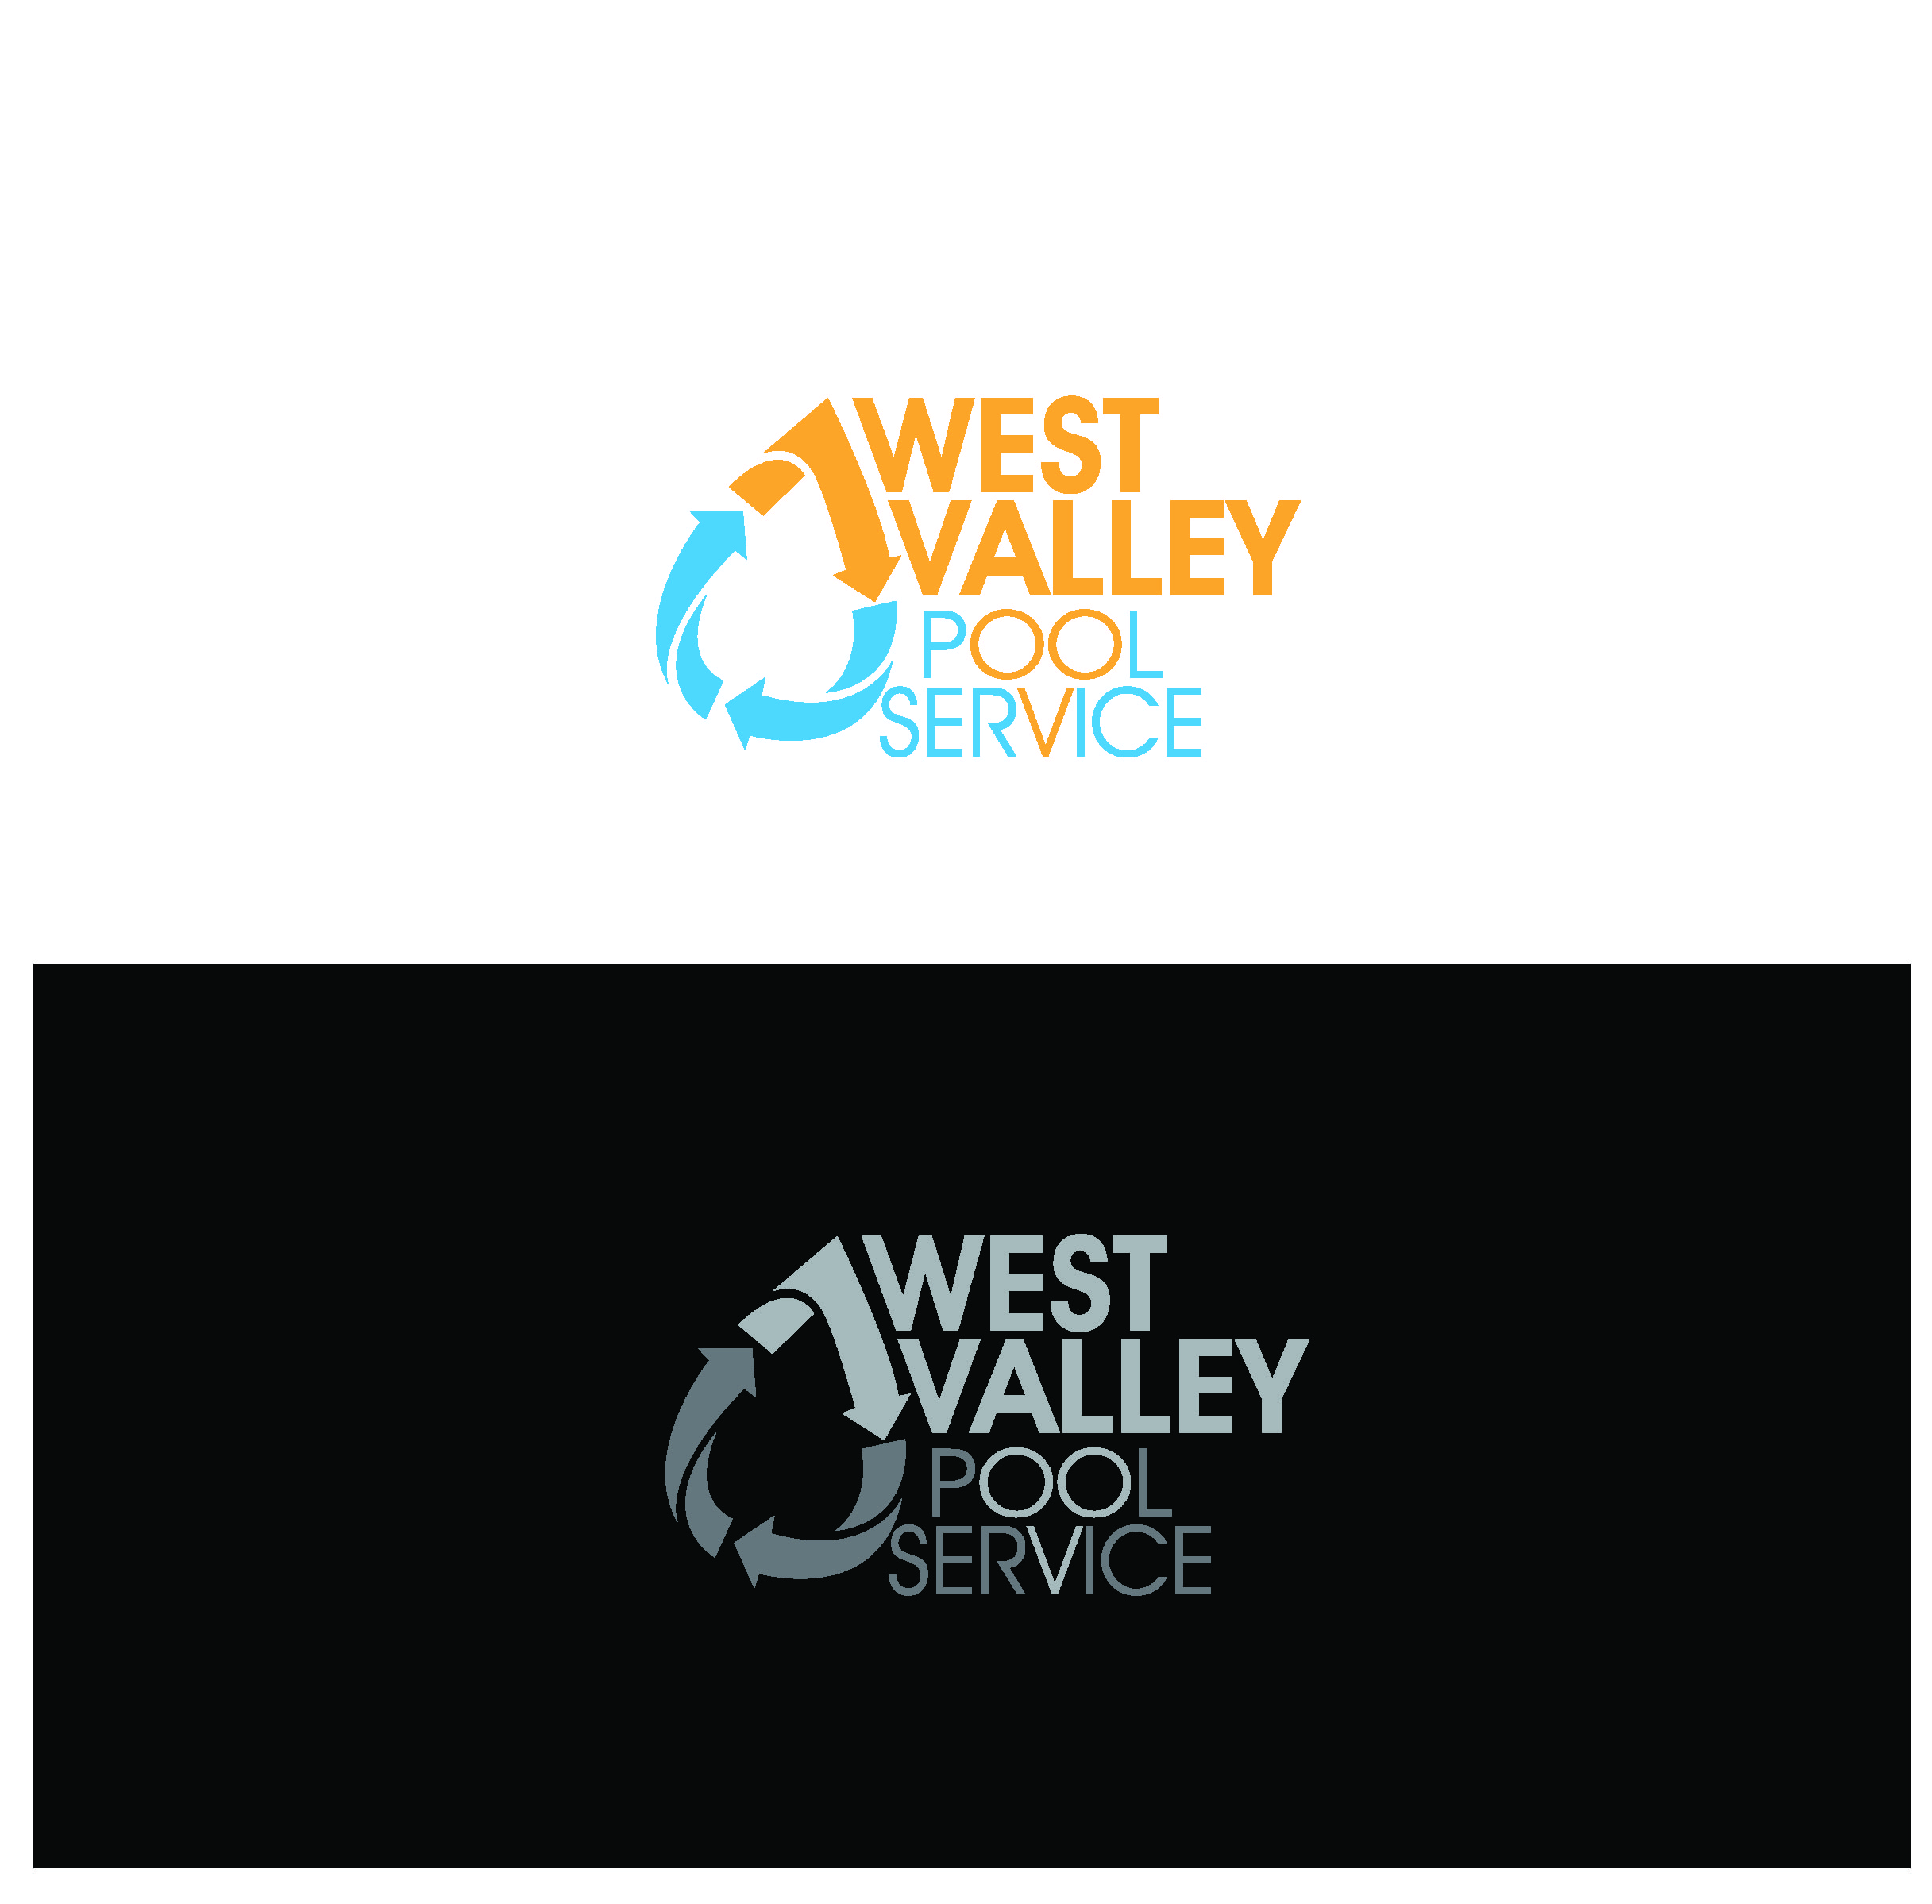 Logo Design by Sampath Gunathilaka - Entry No. 95 in the Logo Design Contest Clever Logo Design for West Valley Pool Service.